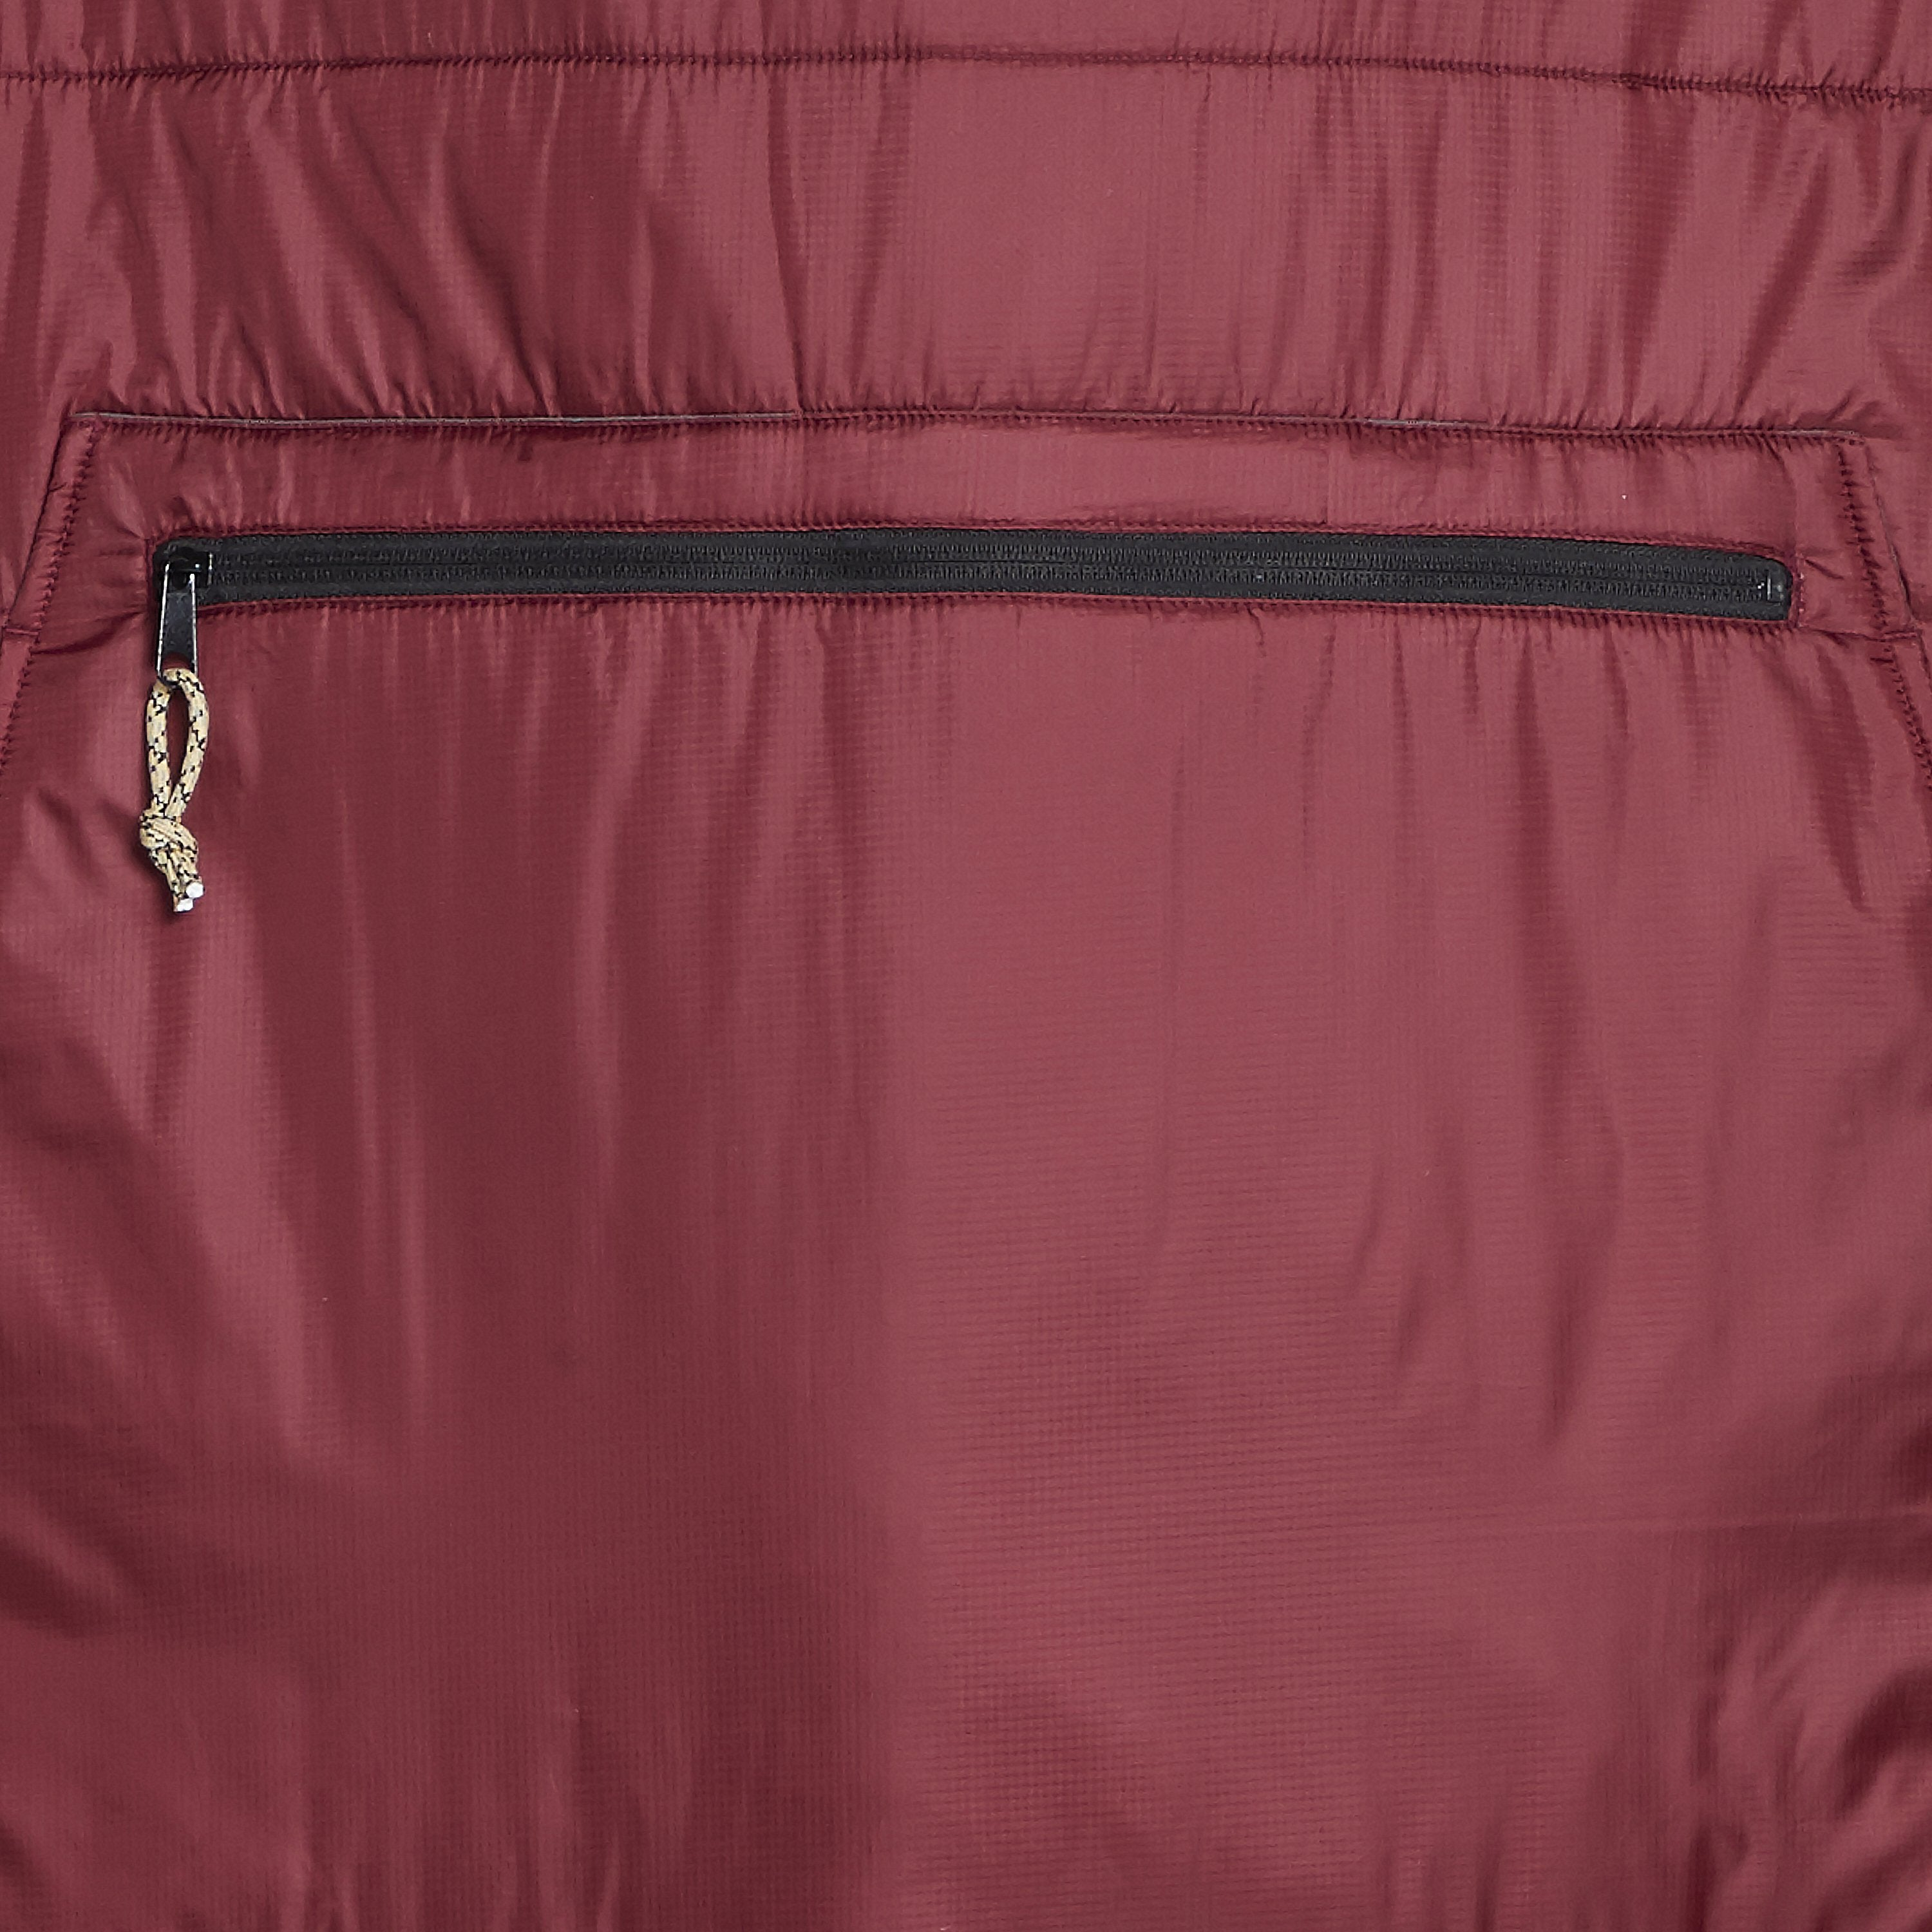 Voited Insulated Outdoor Poncho - Oxblood image 5